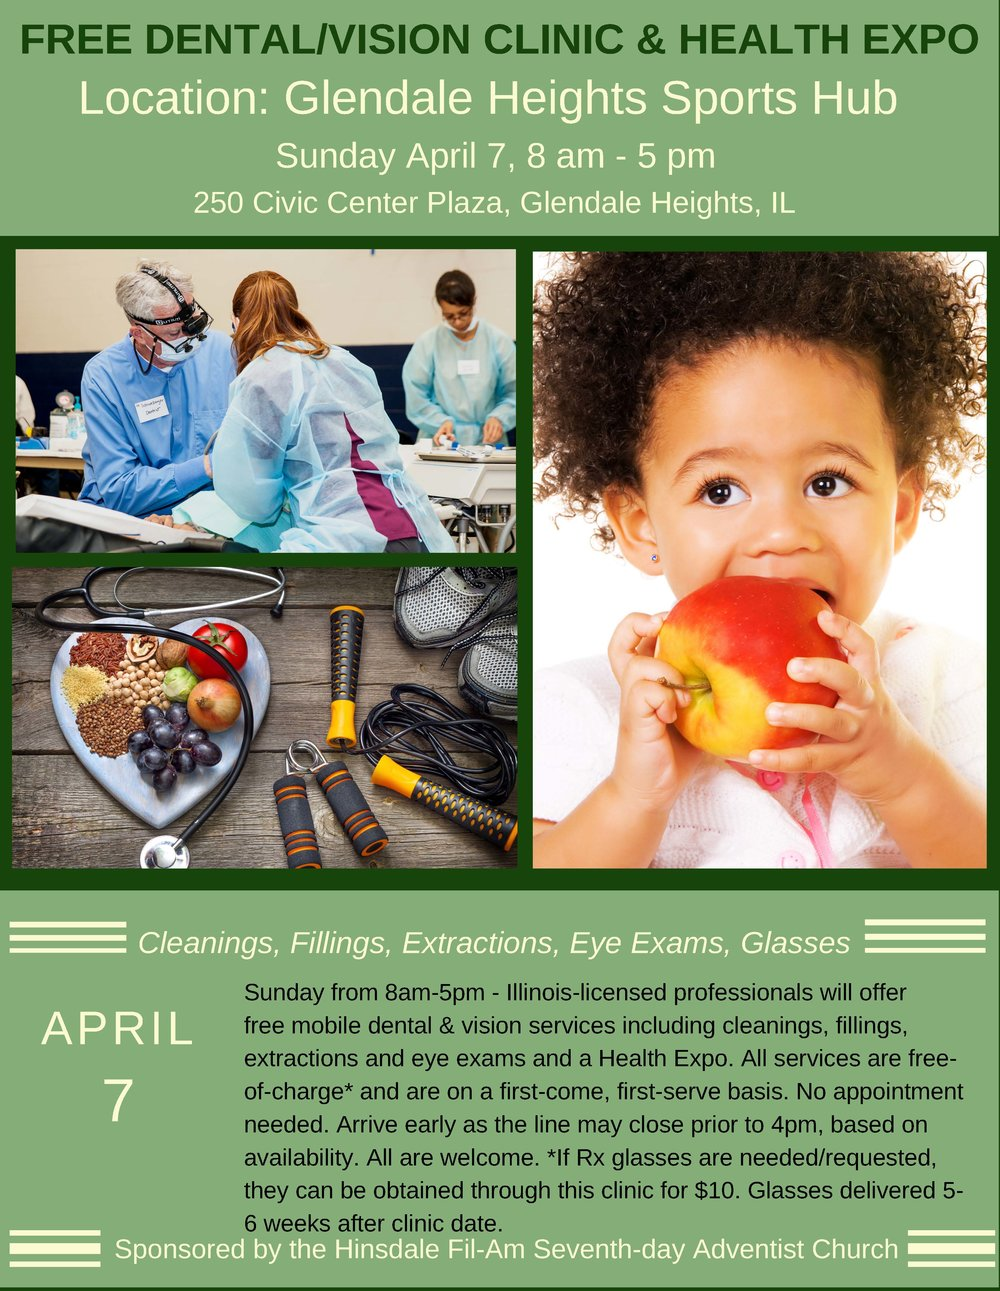 jpgGlendale Heights Dental and Vision Clinic Flyer.jpg